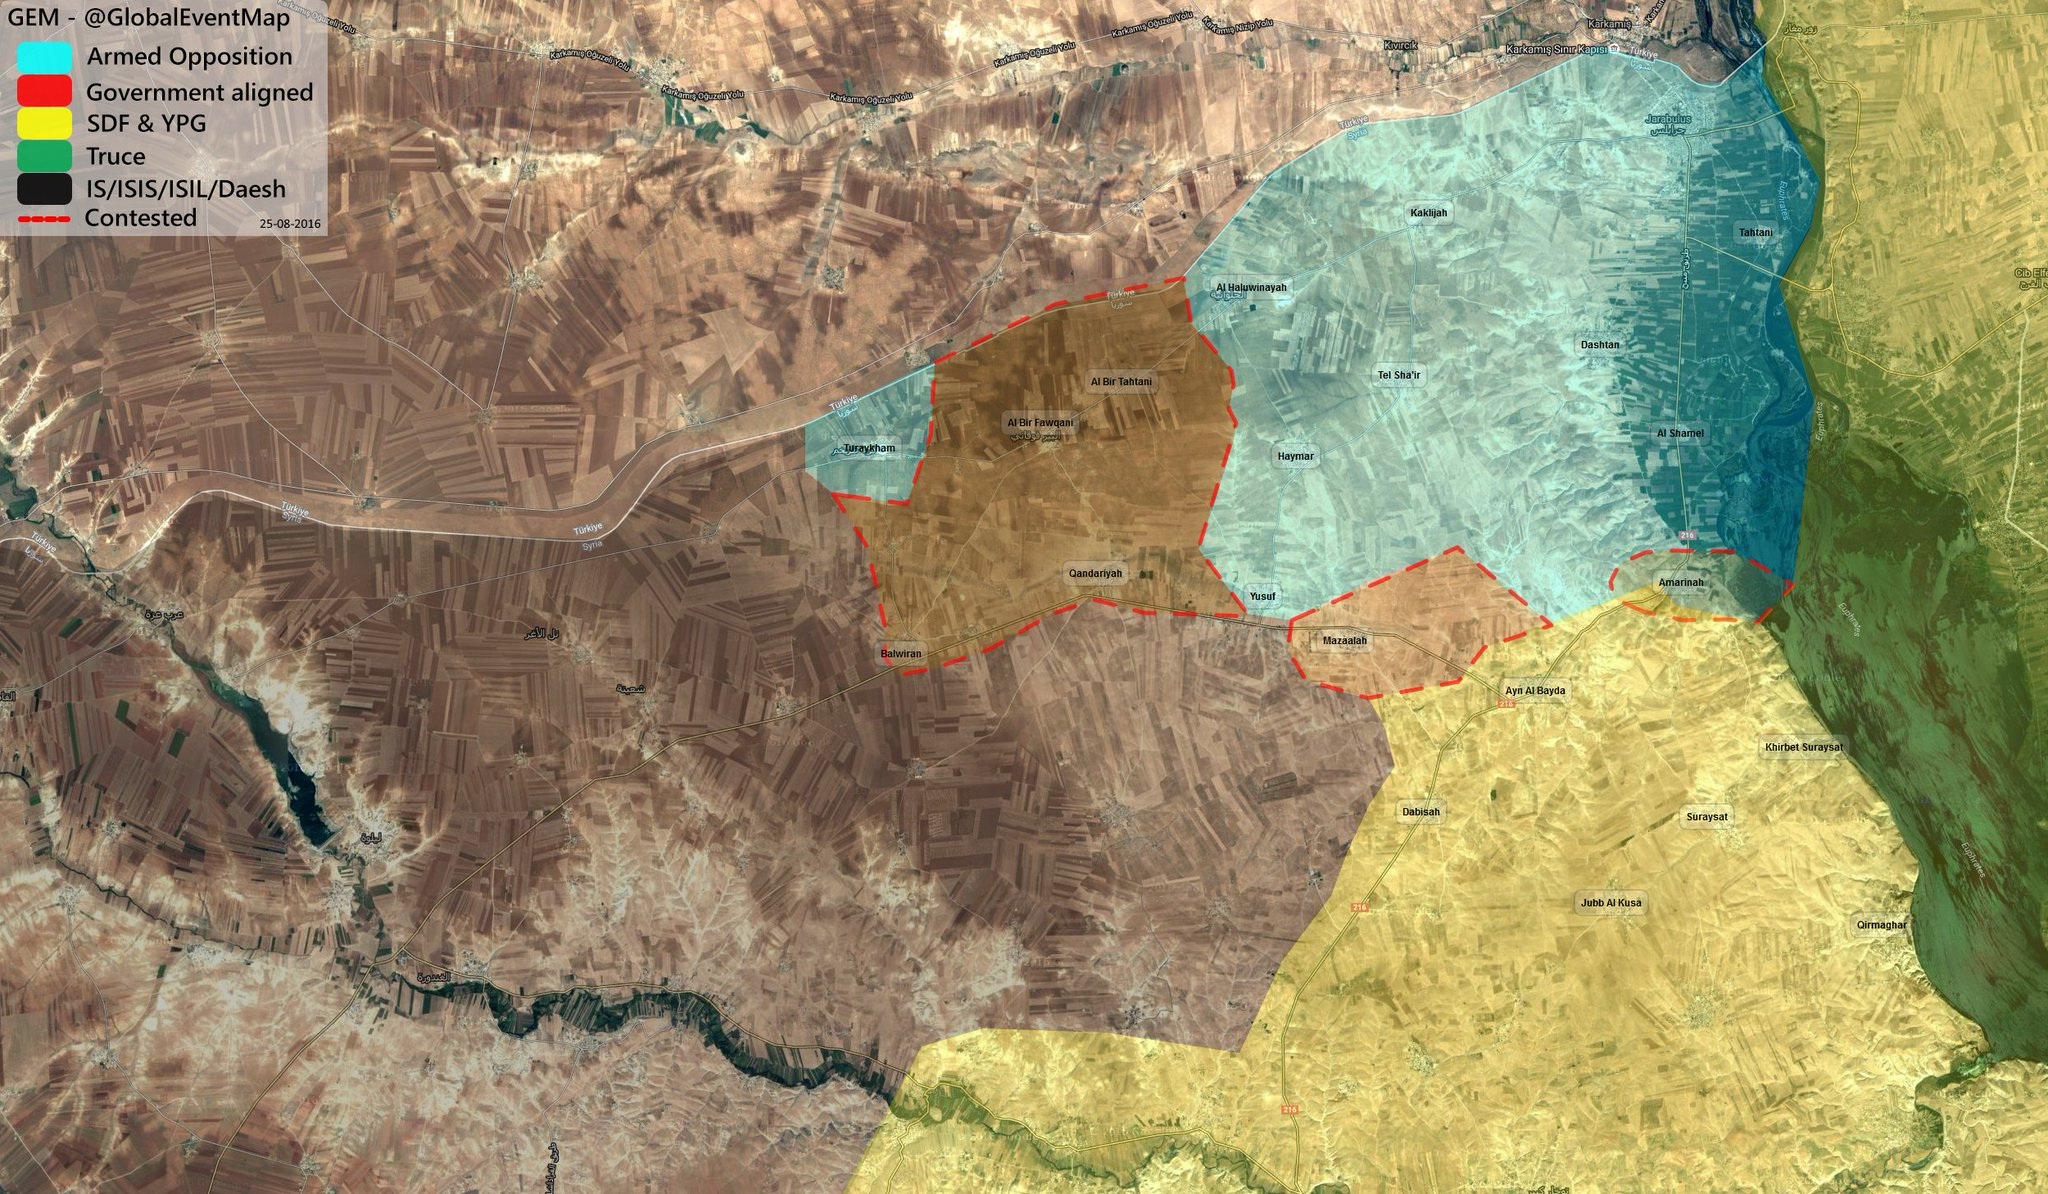 Turkish-led Forces Gain More Areas near Jarablus amid YPG Withdrawal from Area